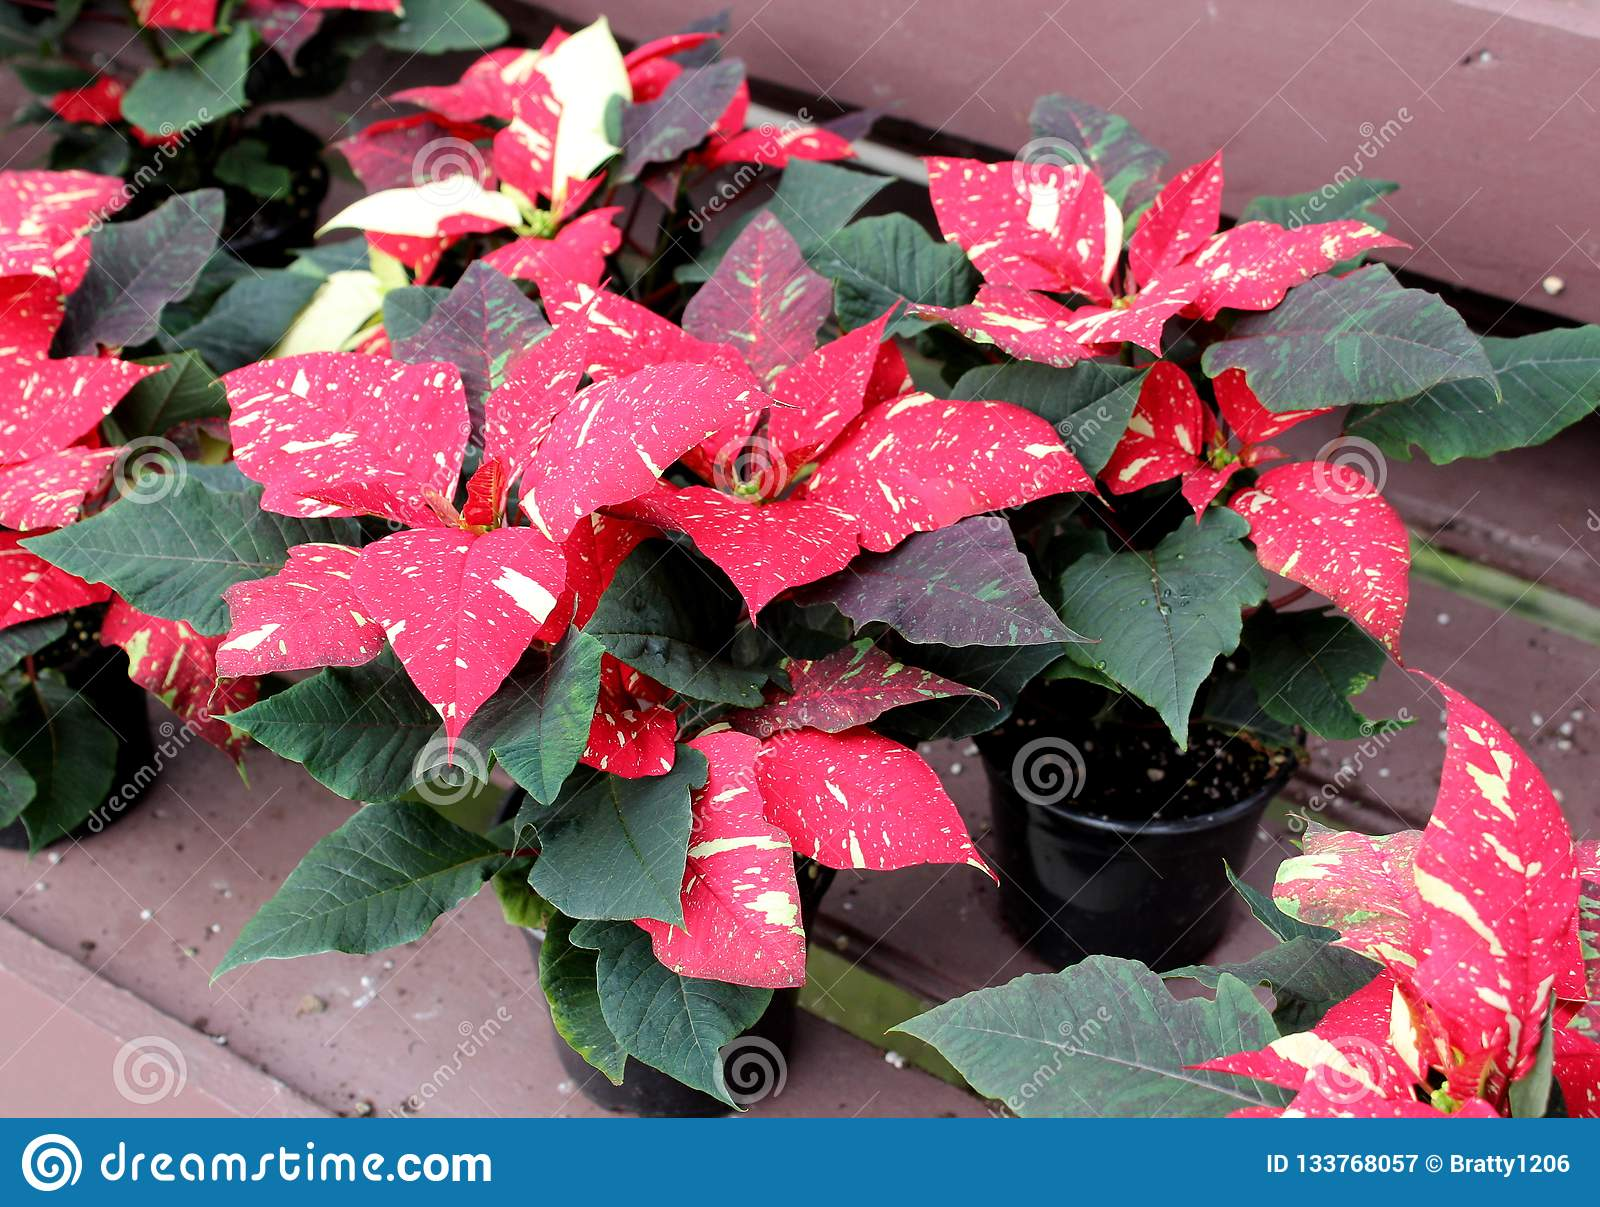 Peaceful Image Of Large Red White And Green Leaves With Yellow